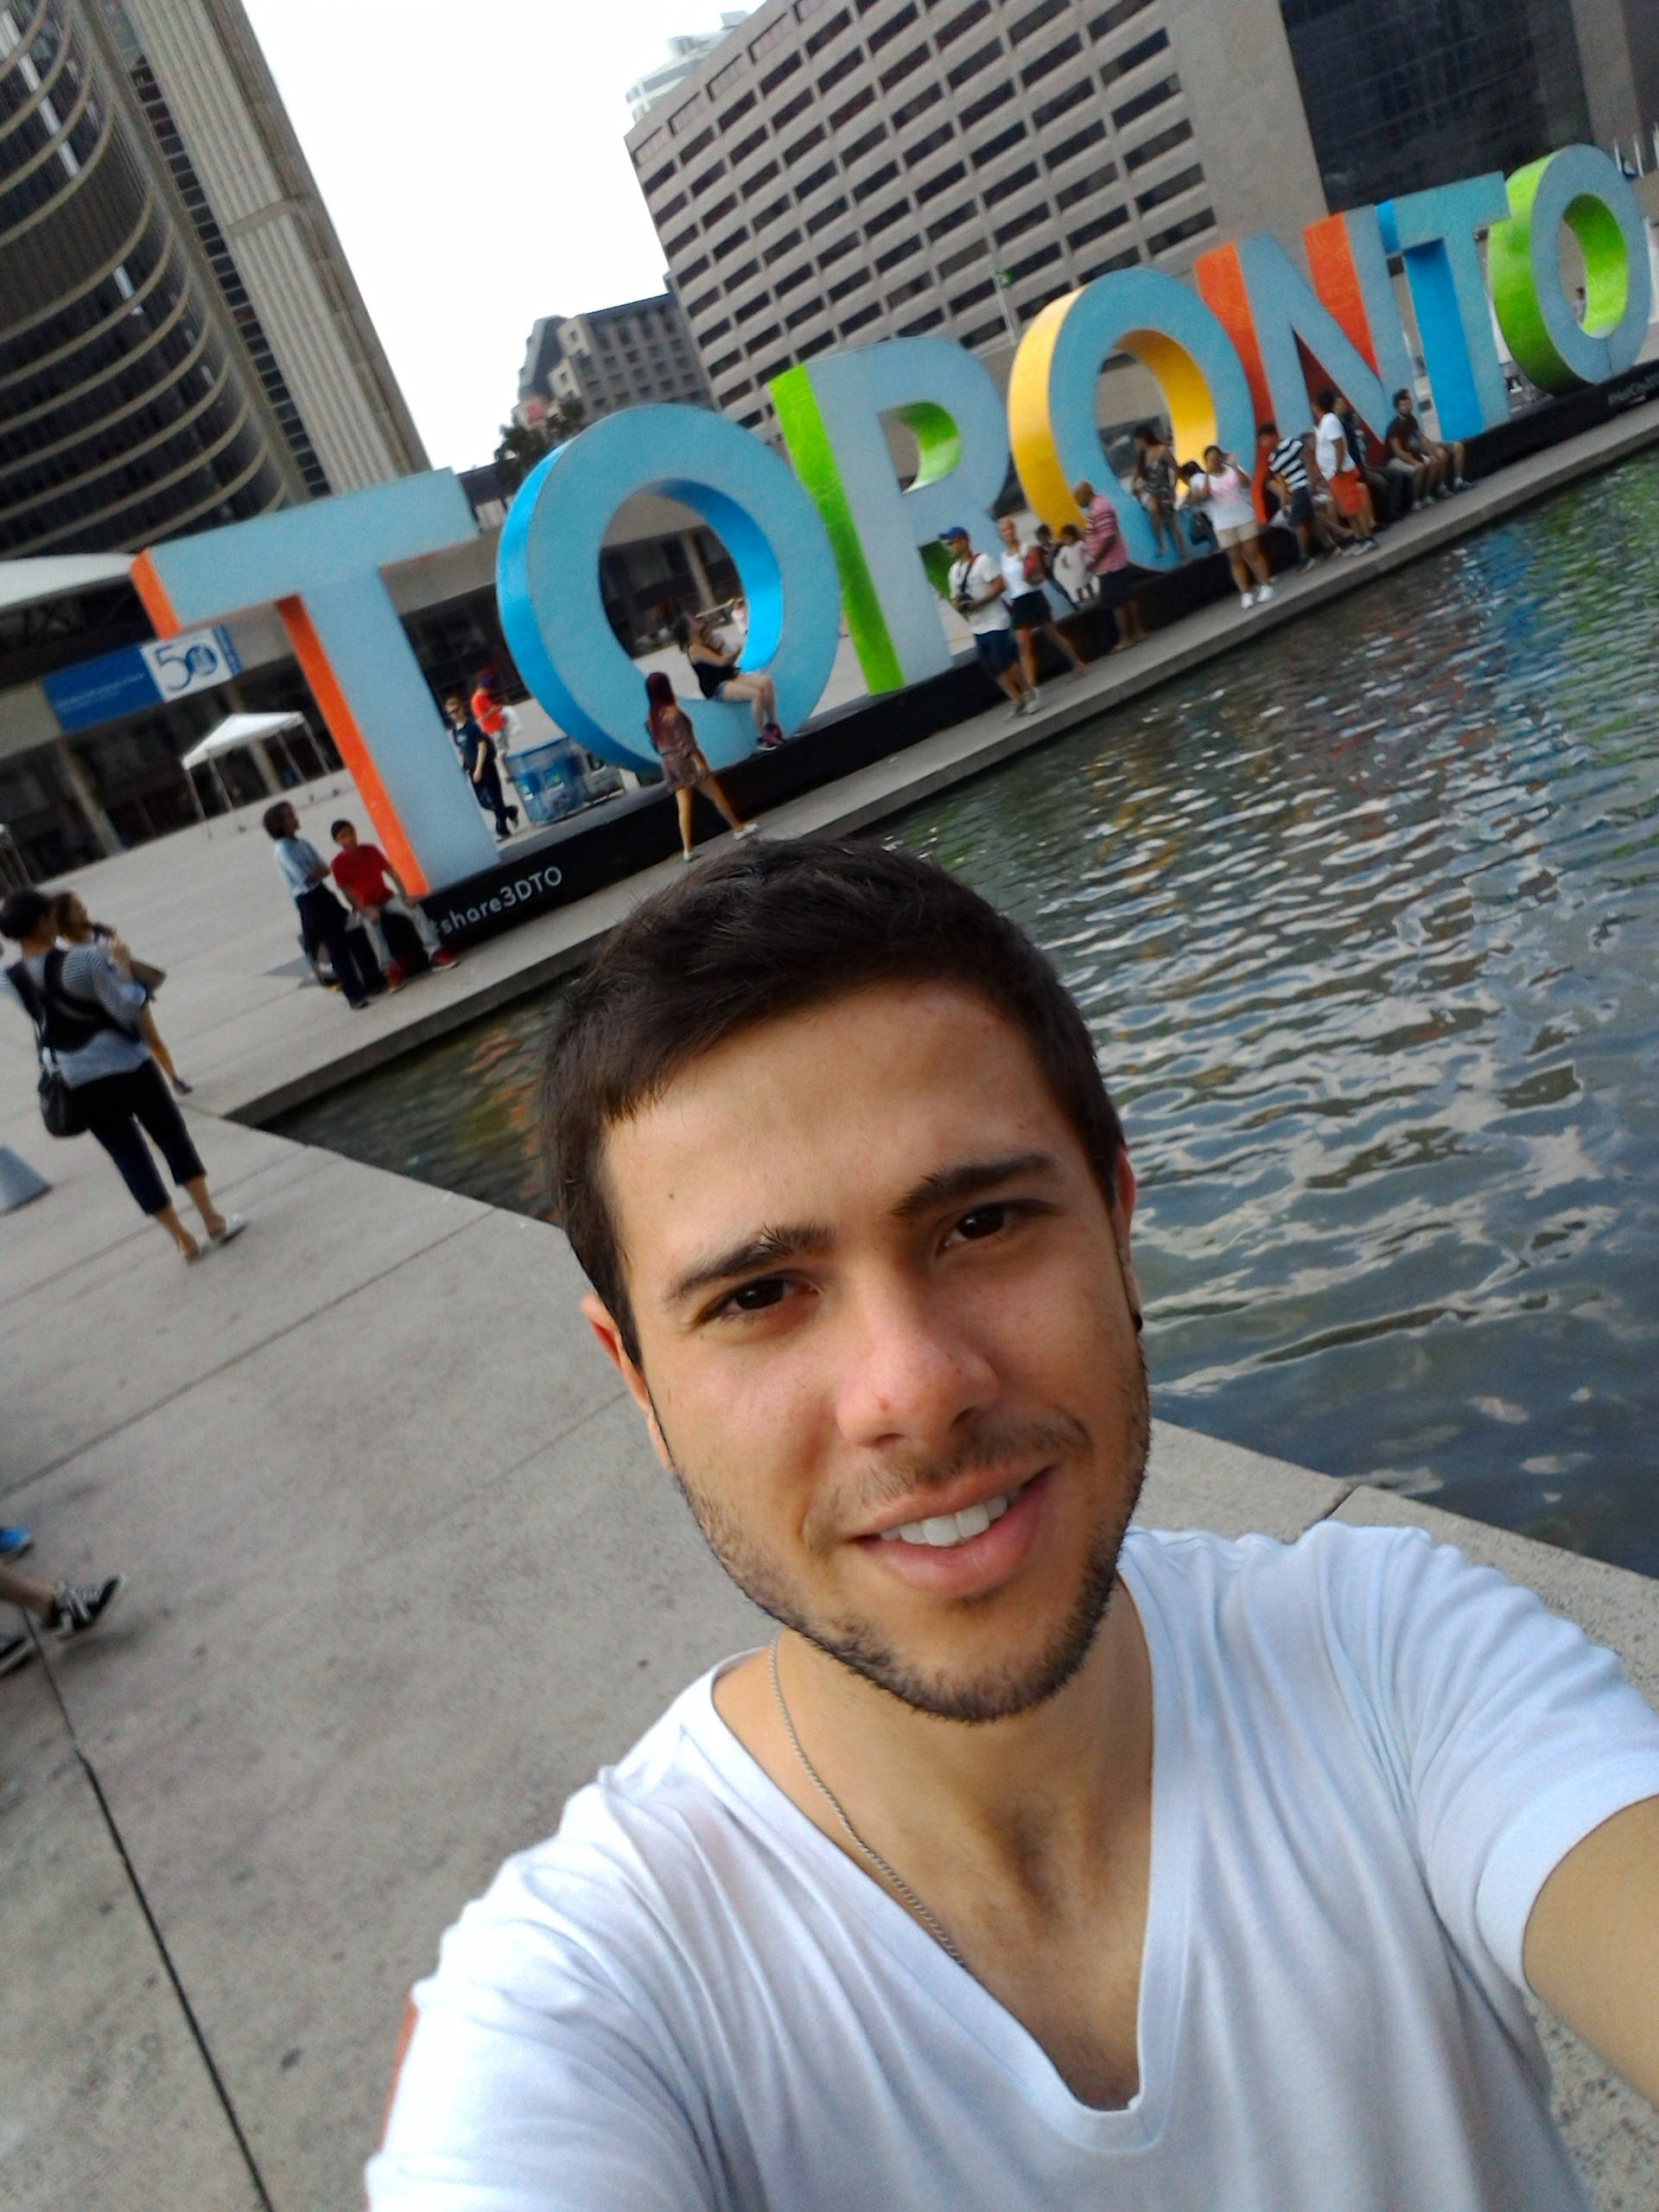 Luis at the Toronto sign at Nathan Phillips' Square